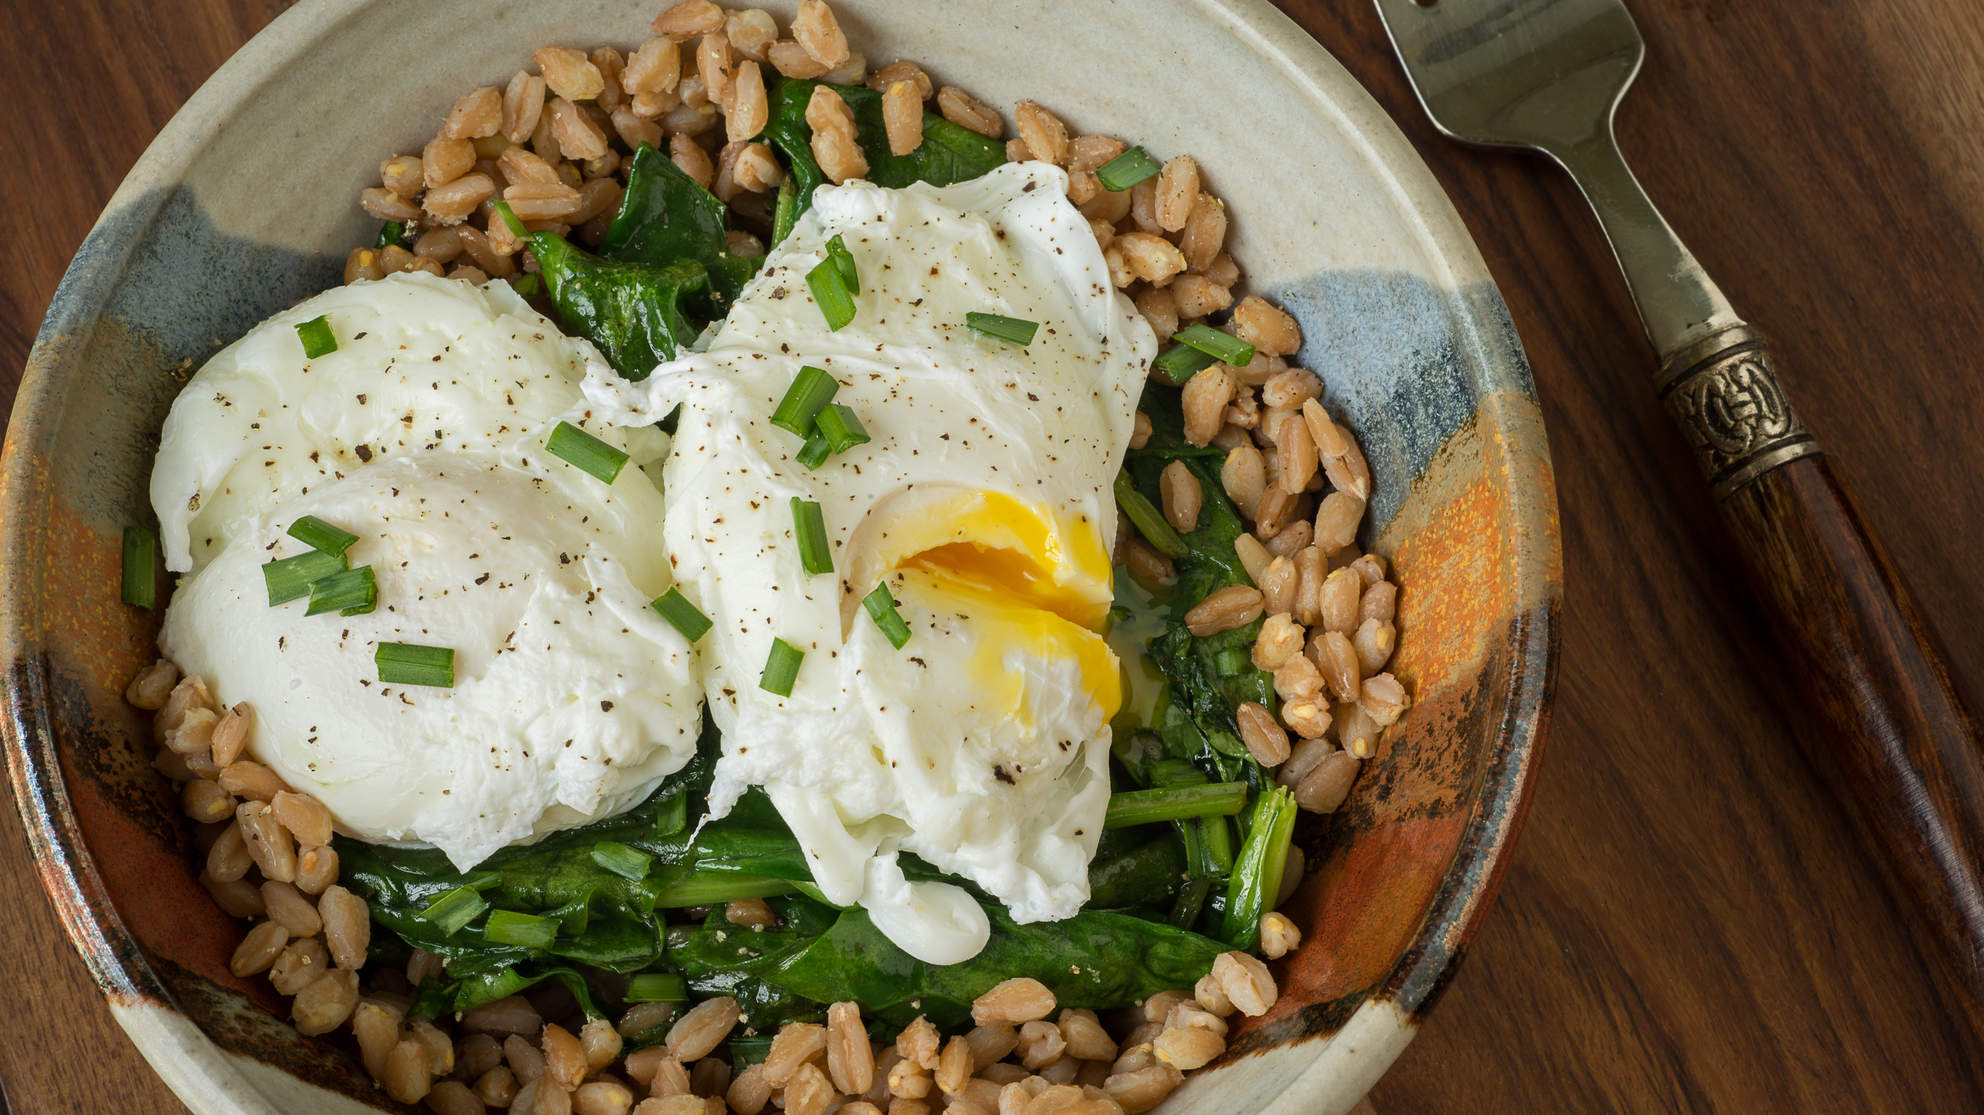 4 Great Dinners That Make Amazing Breakfasts the Next Morning